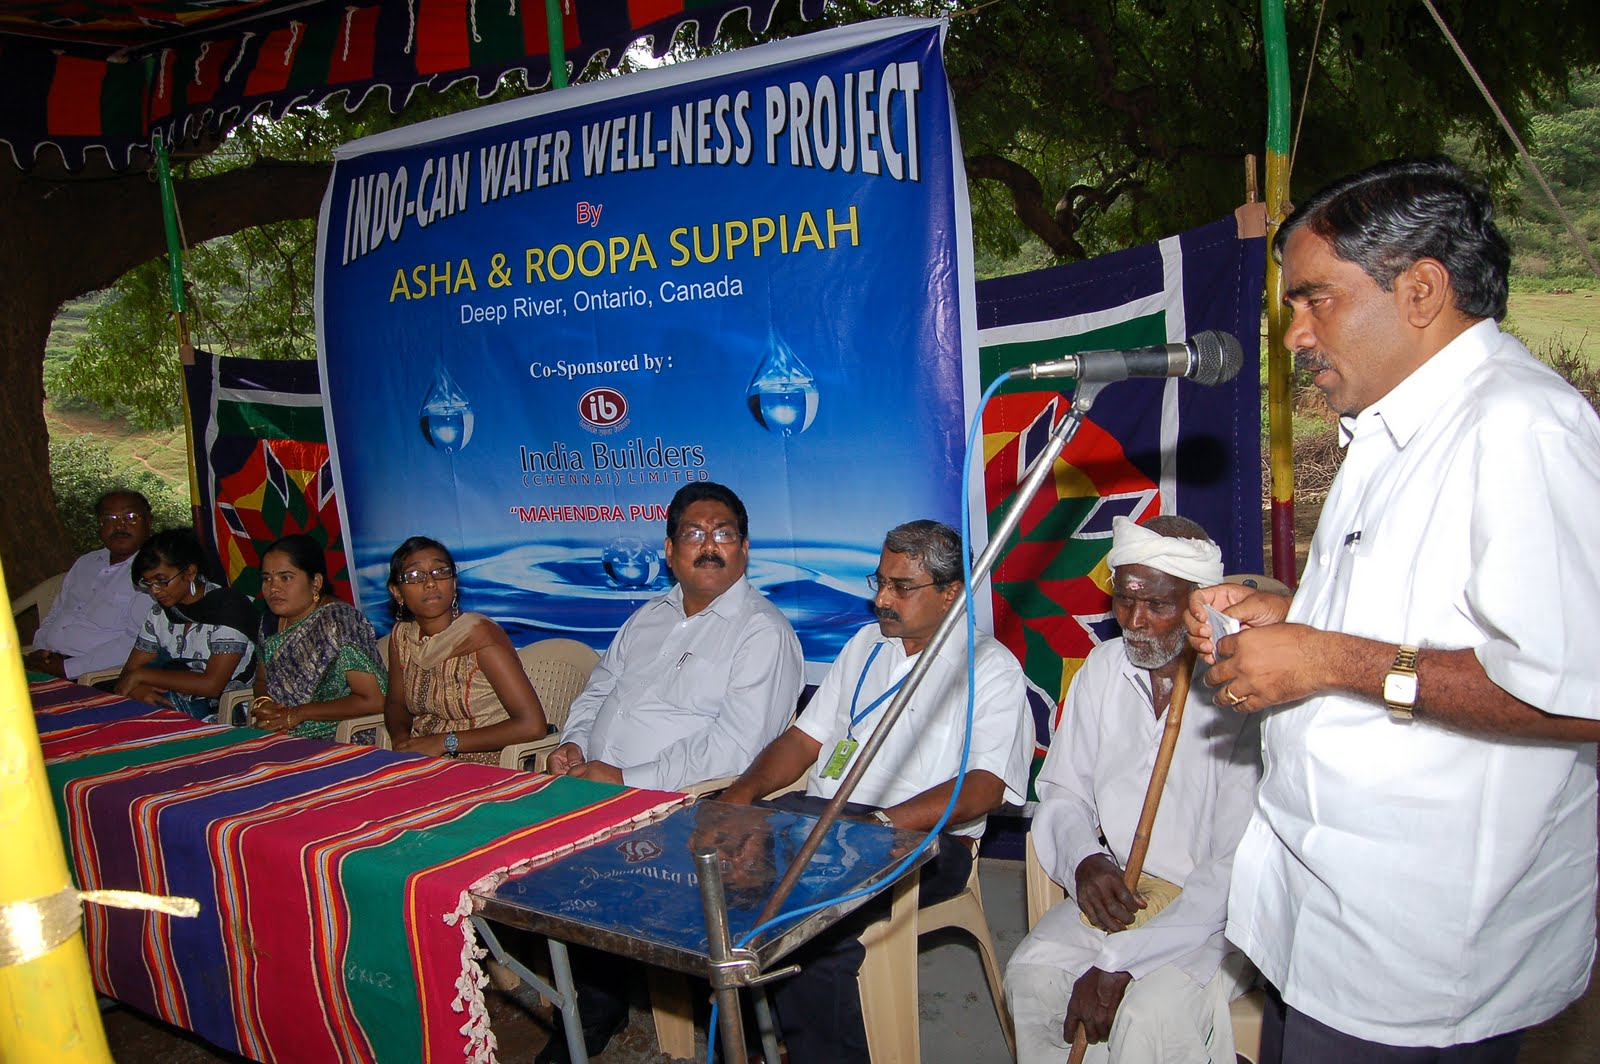 India project